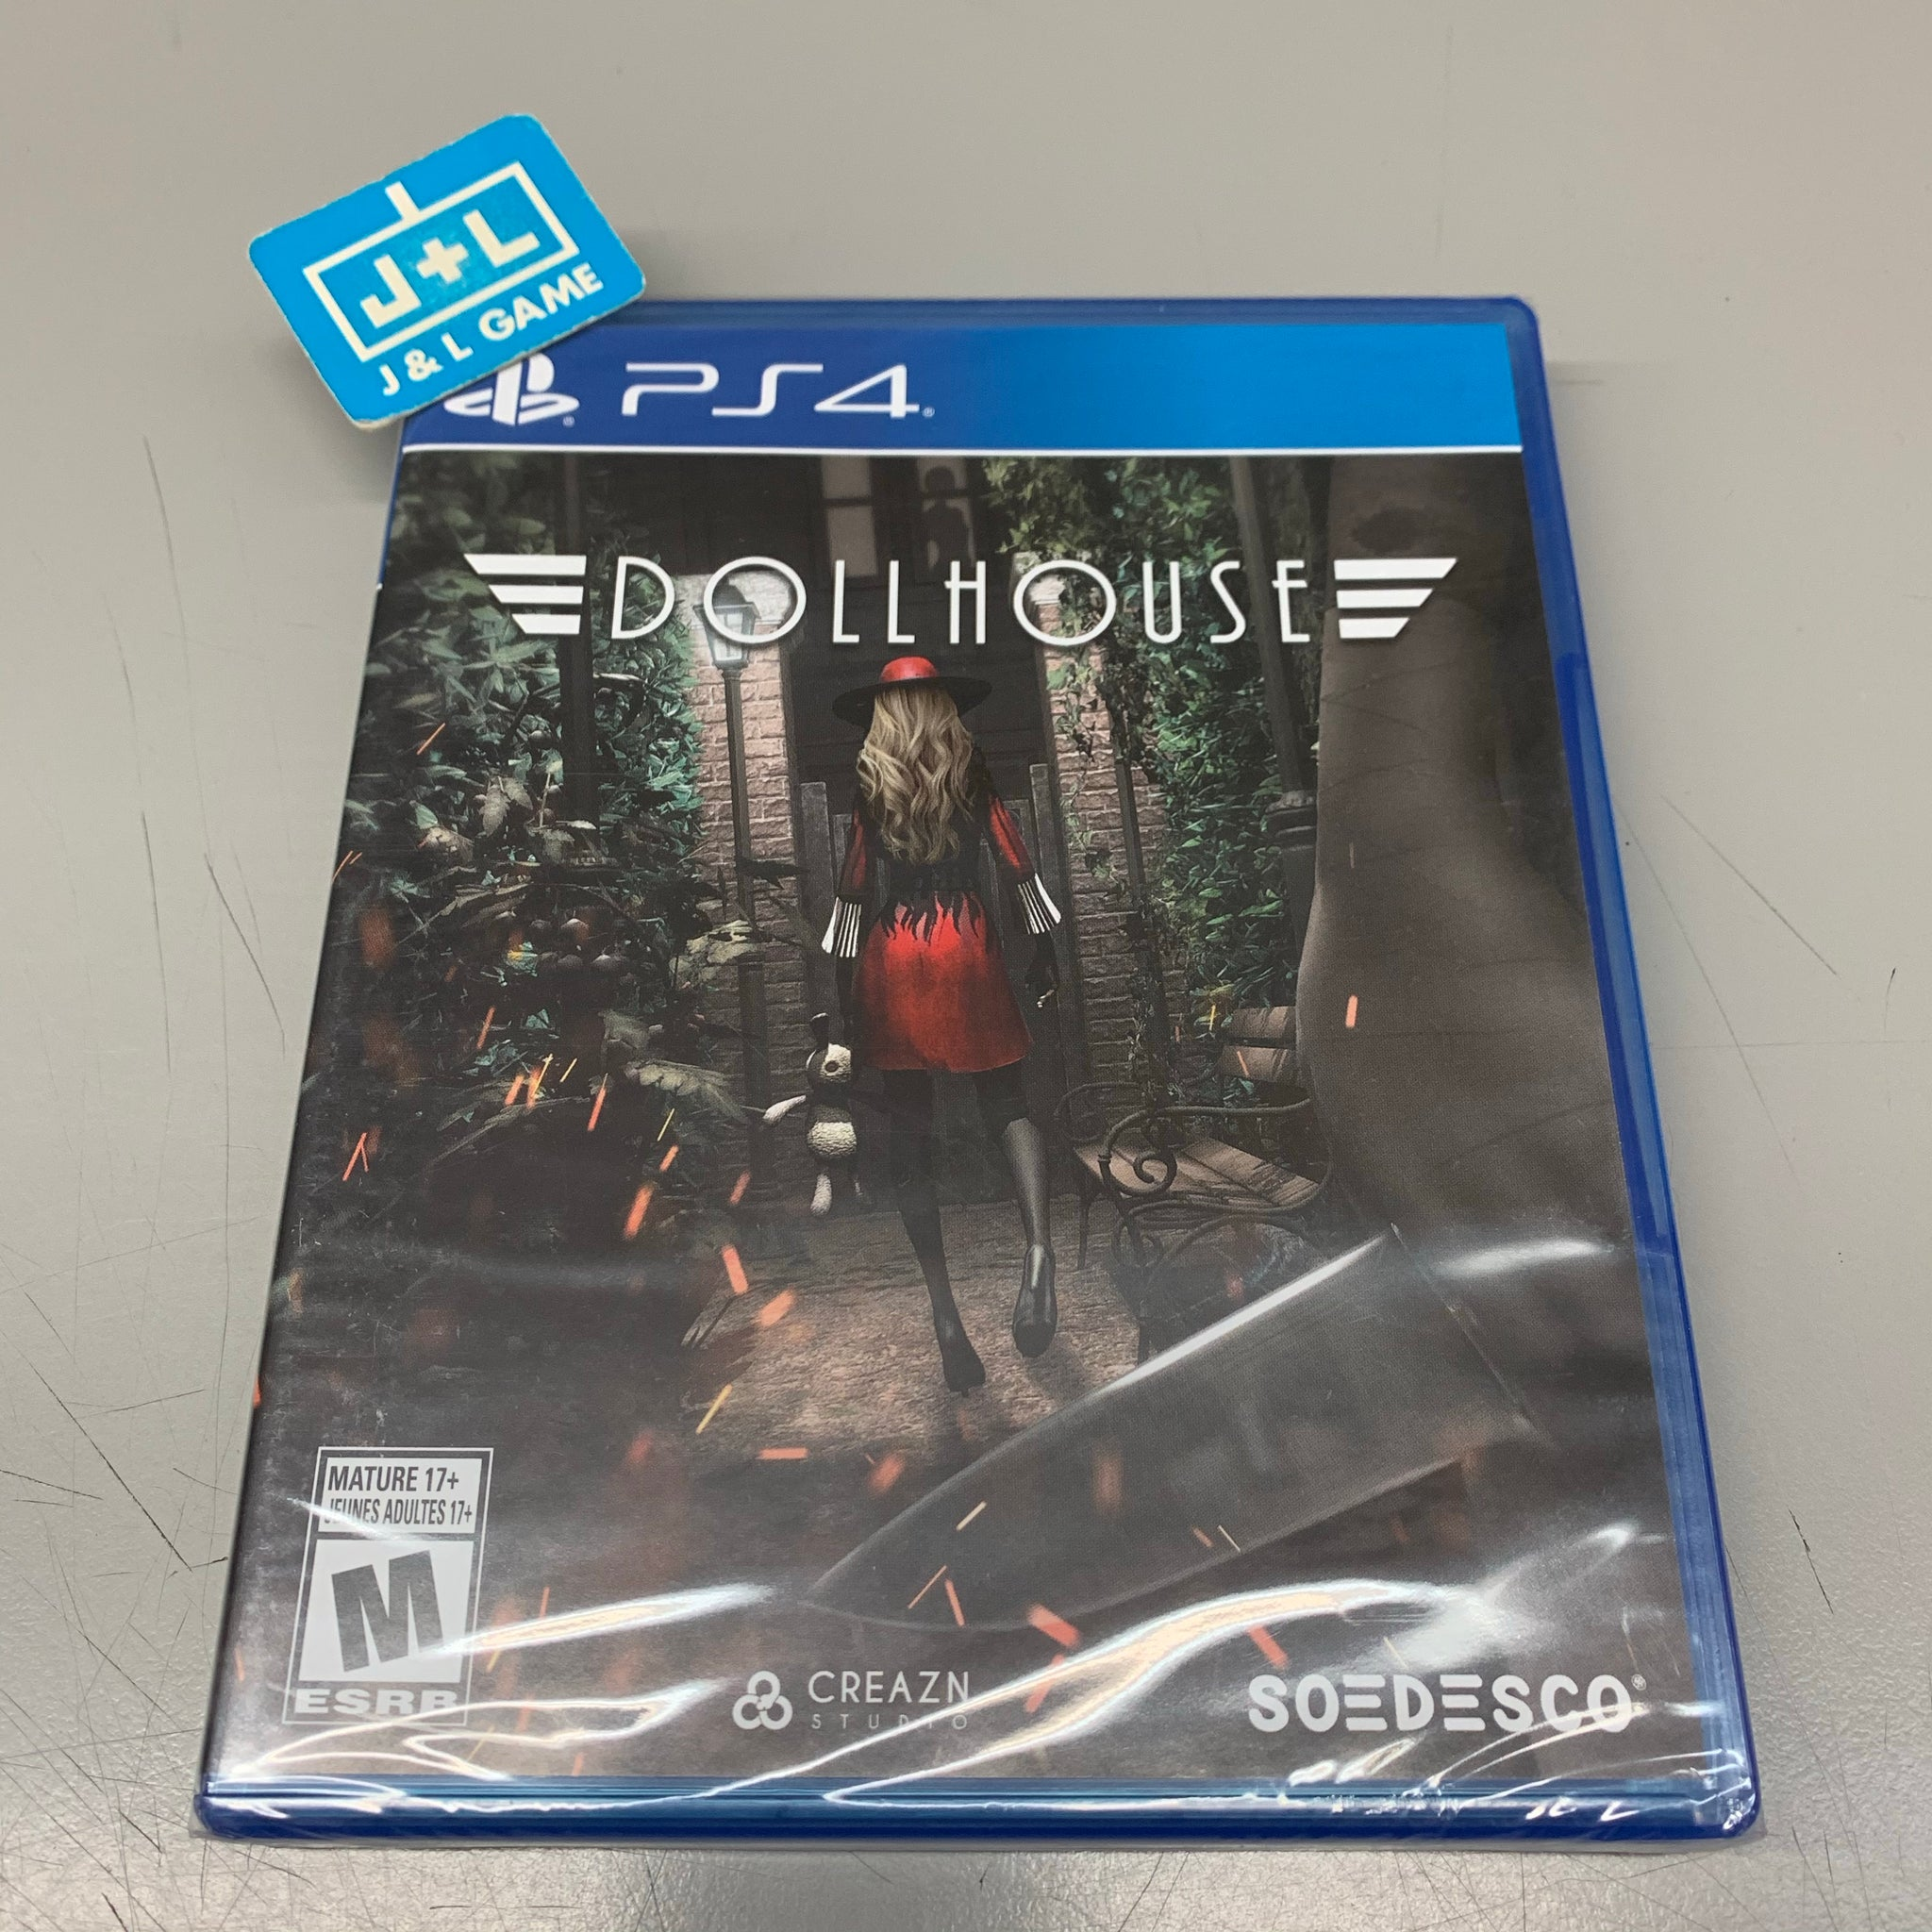 Dollhouse - PlayStation 4 [NEW]